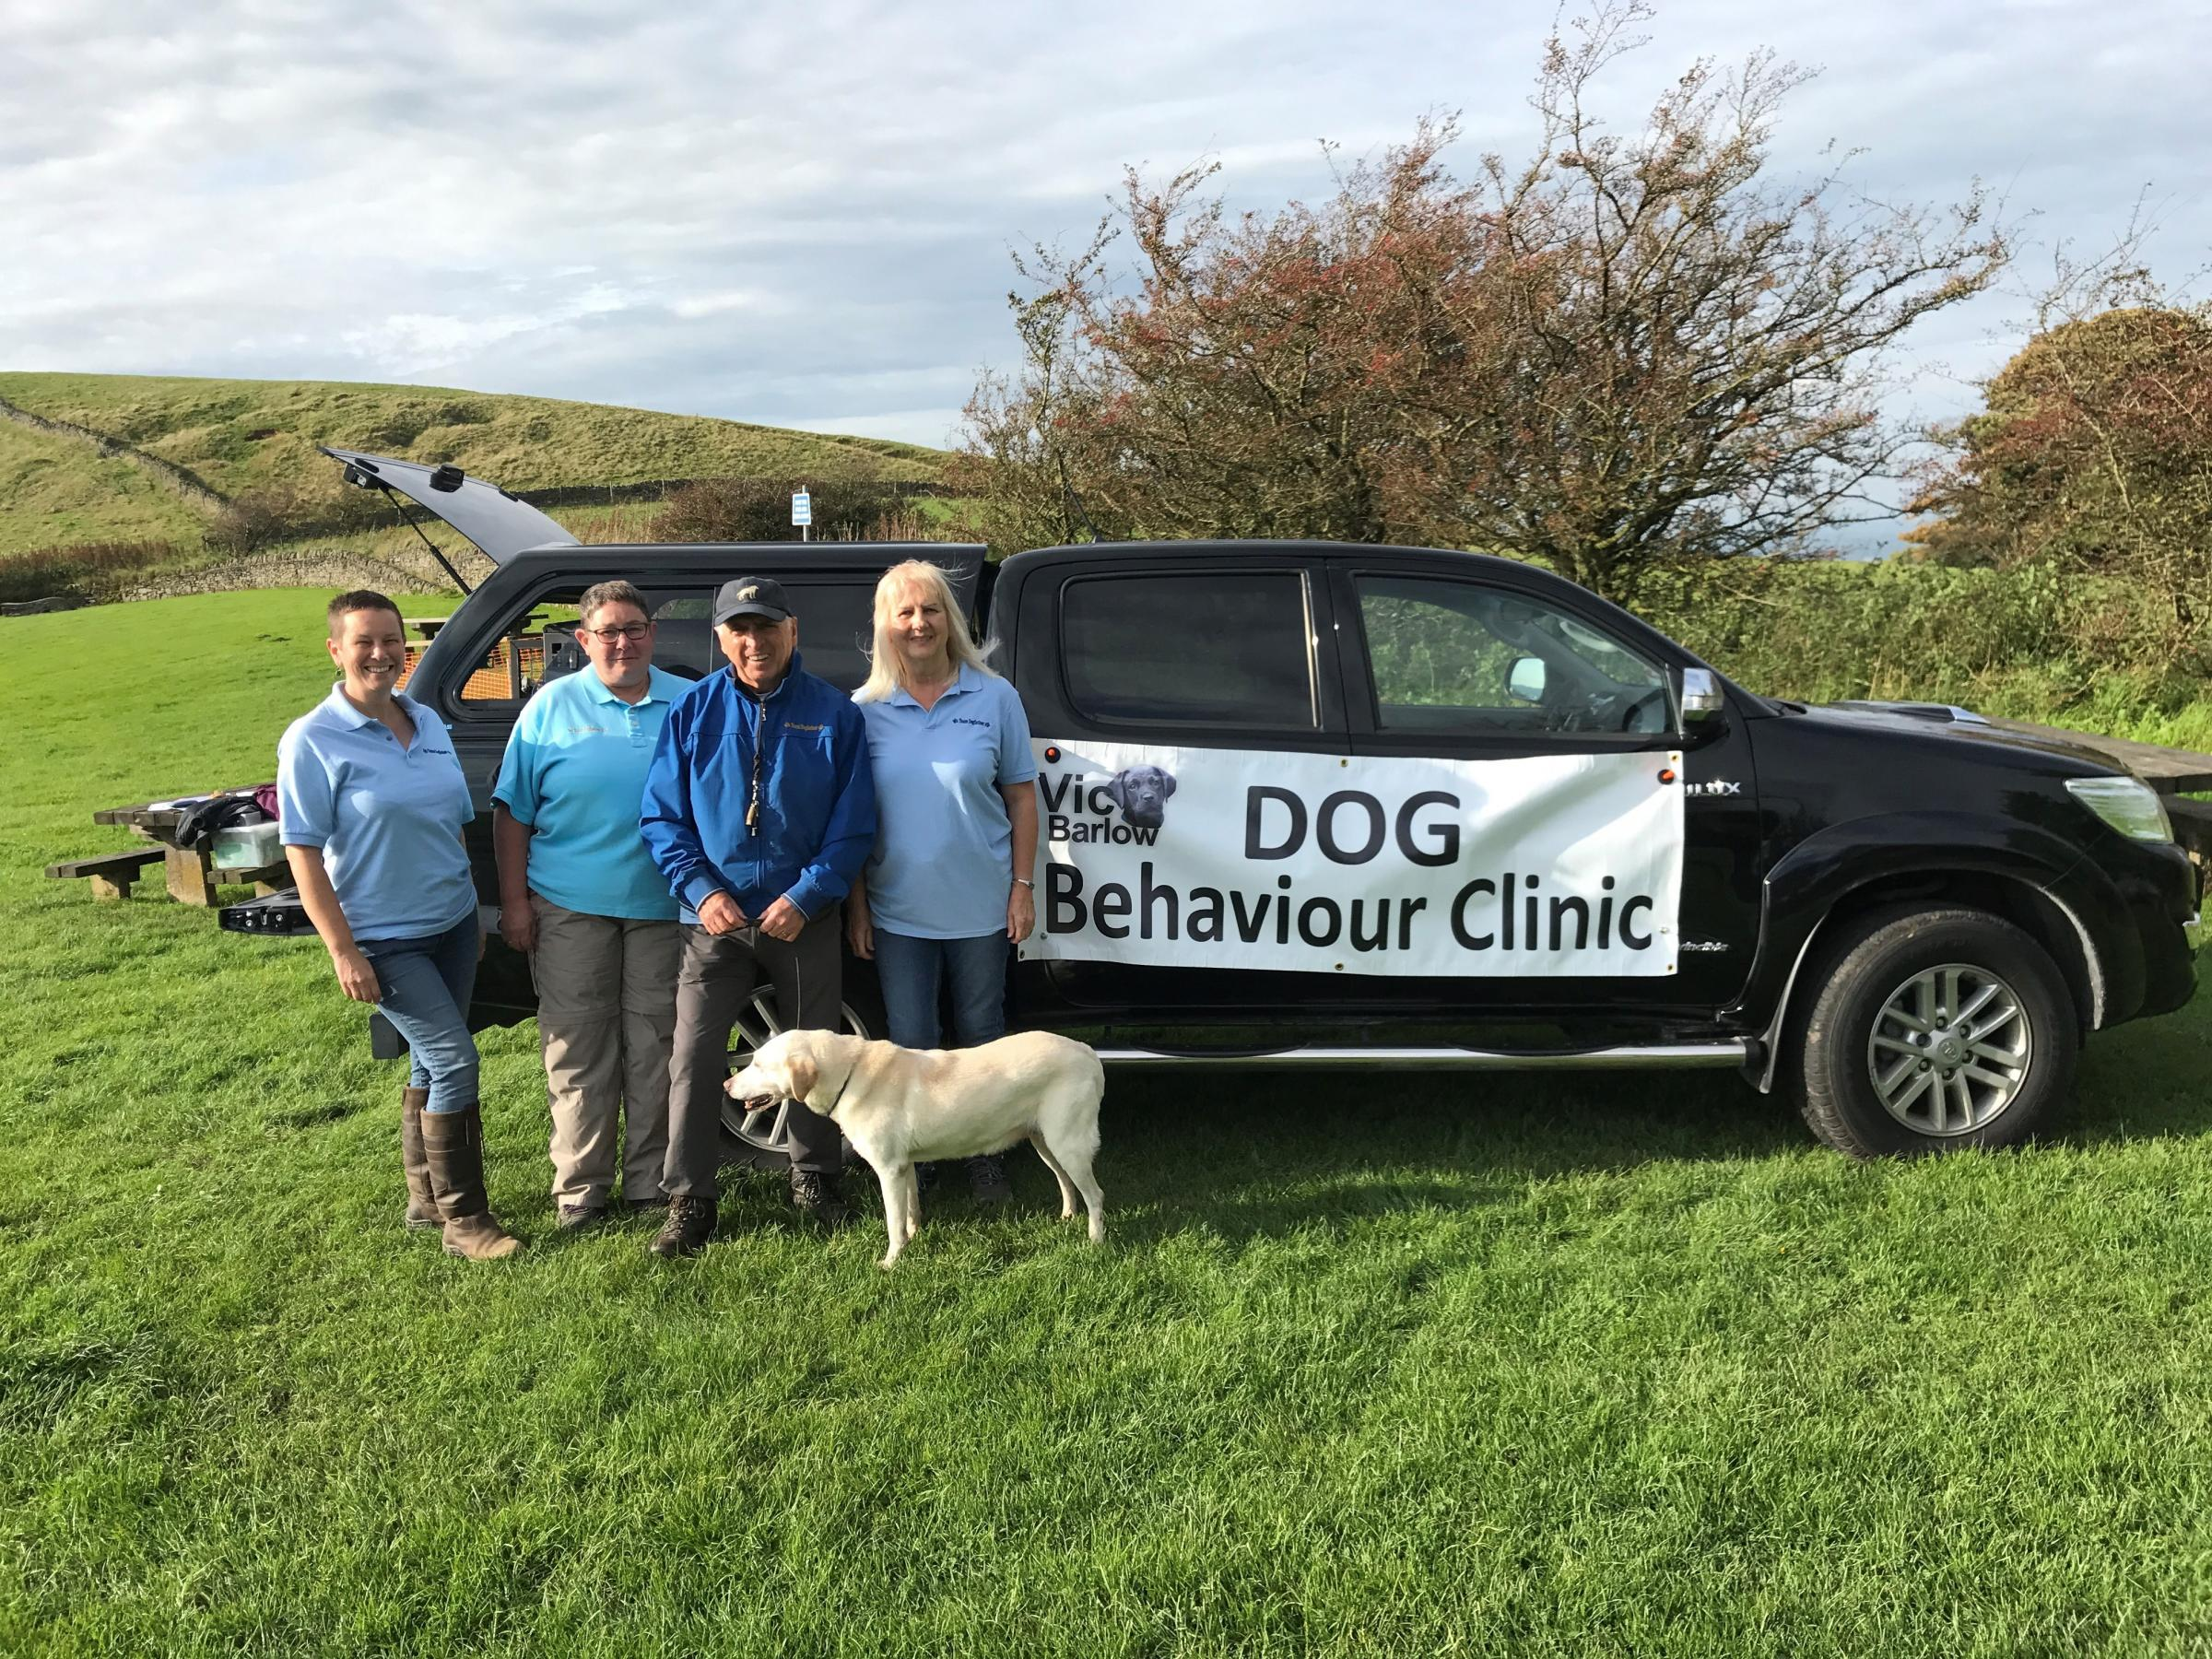 Take the chance to resolve all your dog's behavioural issues